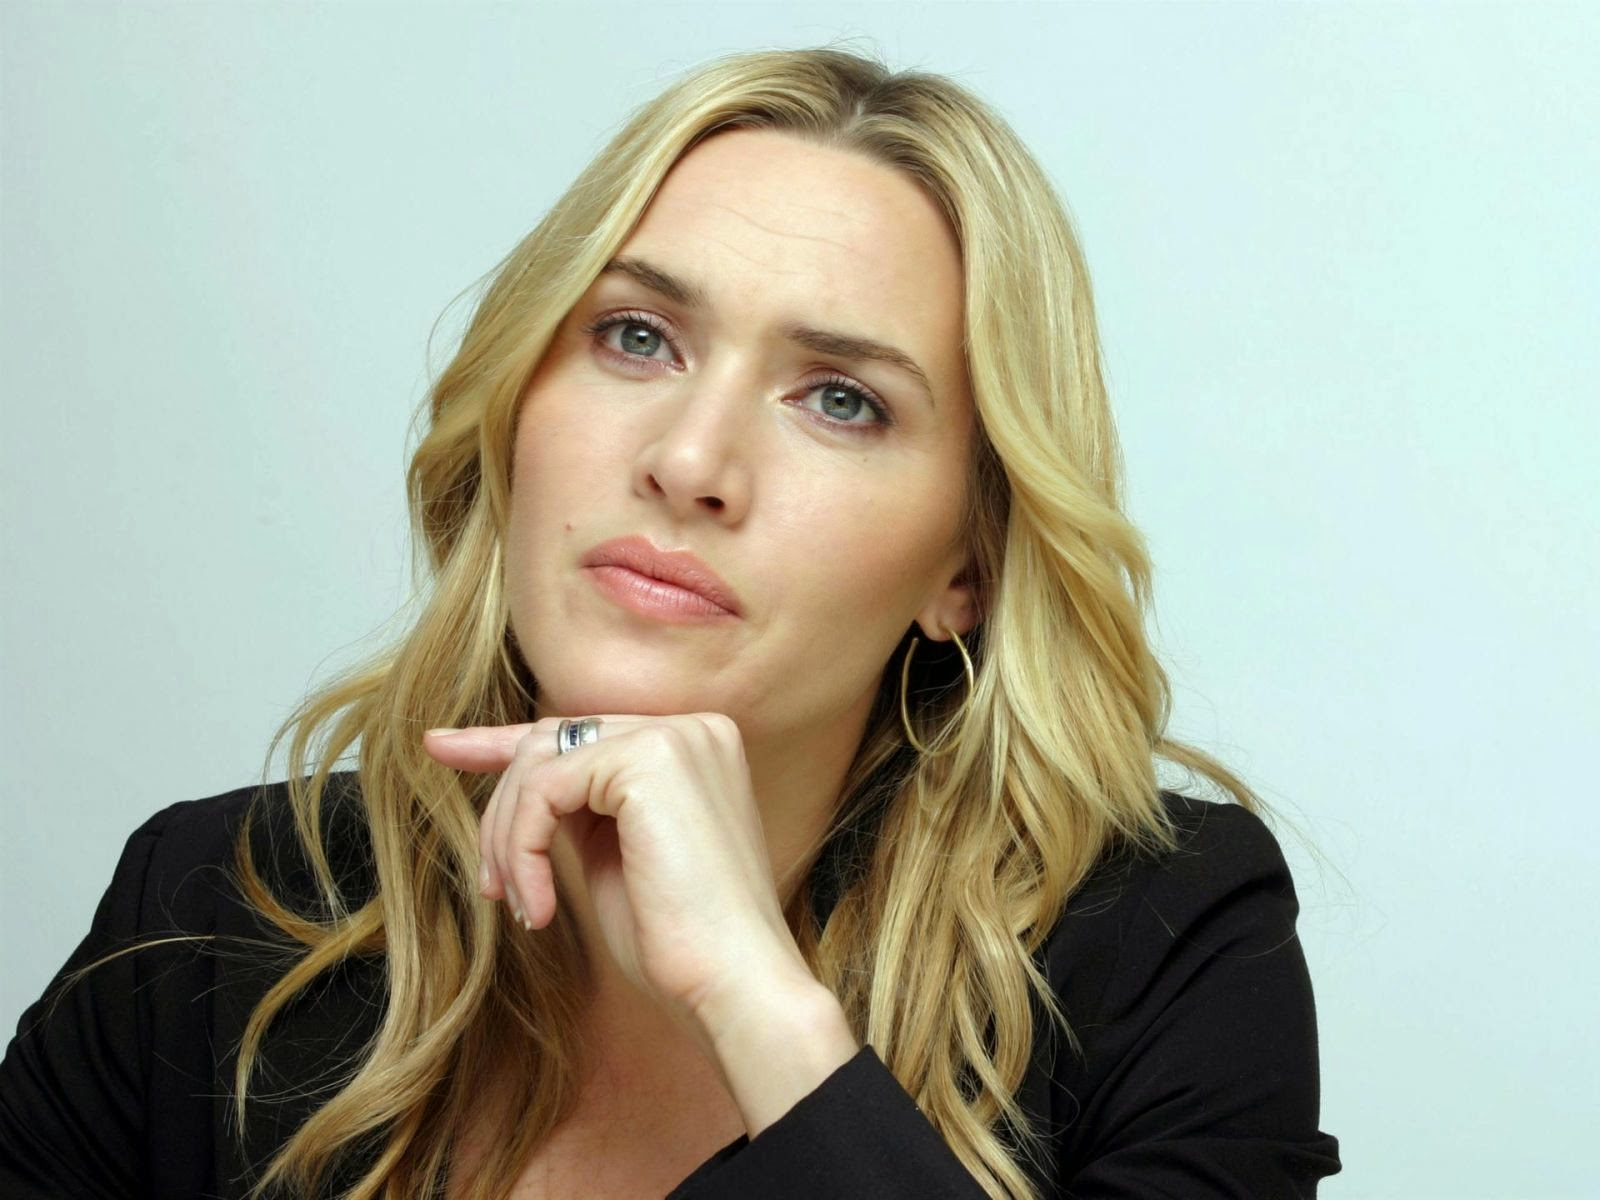 kate winslet wallpapers kate winslet wallpapers kate winslet